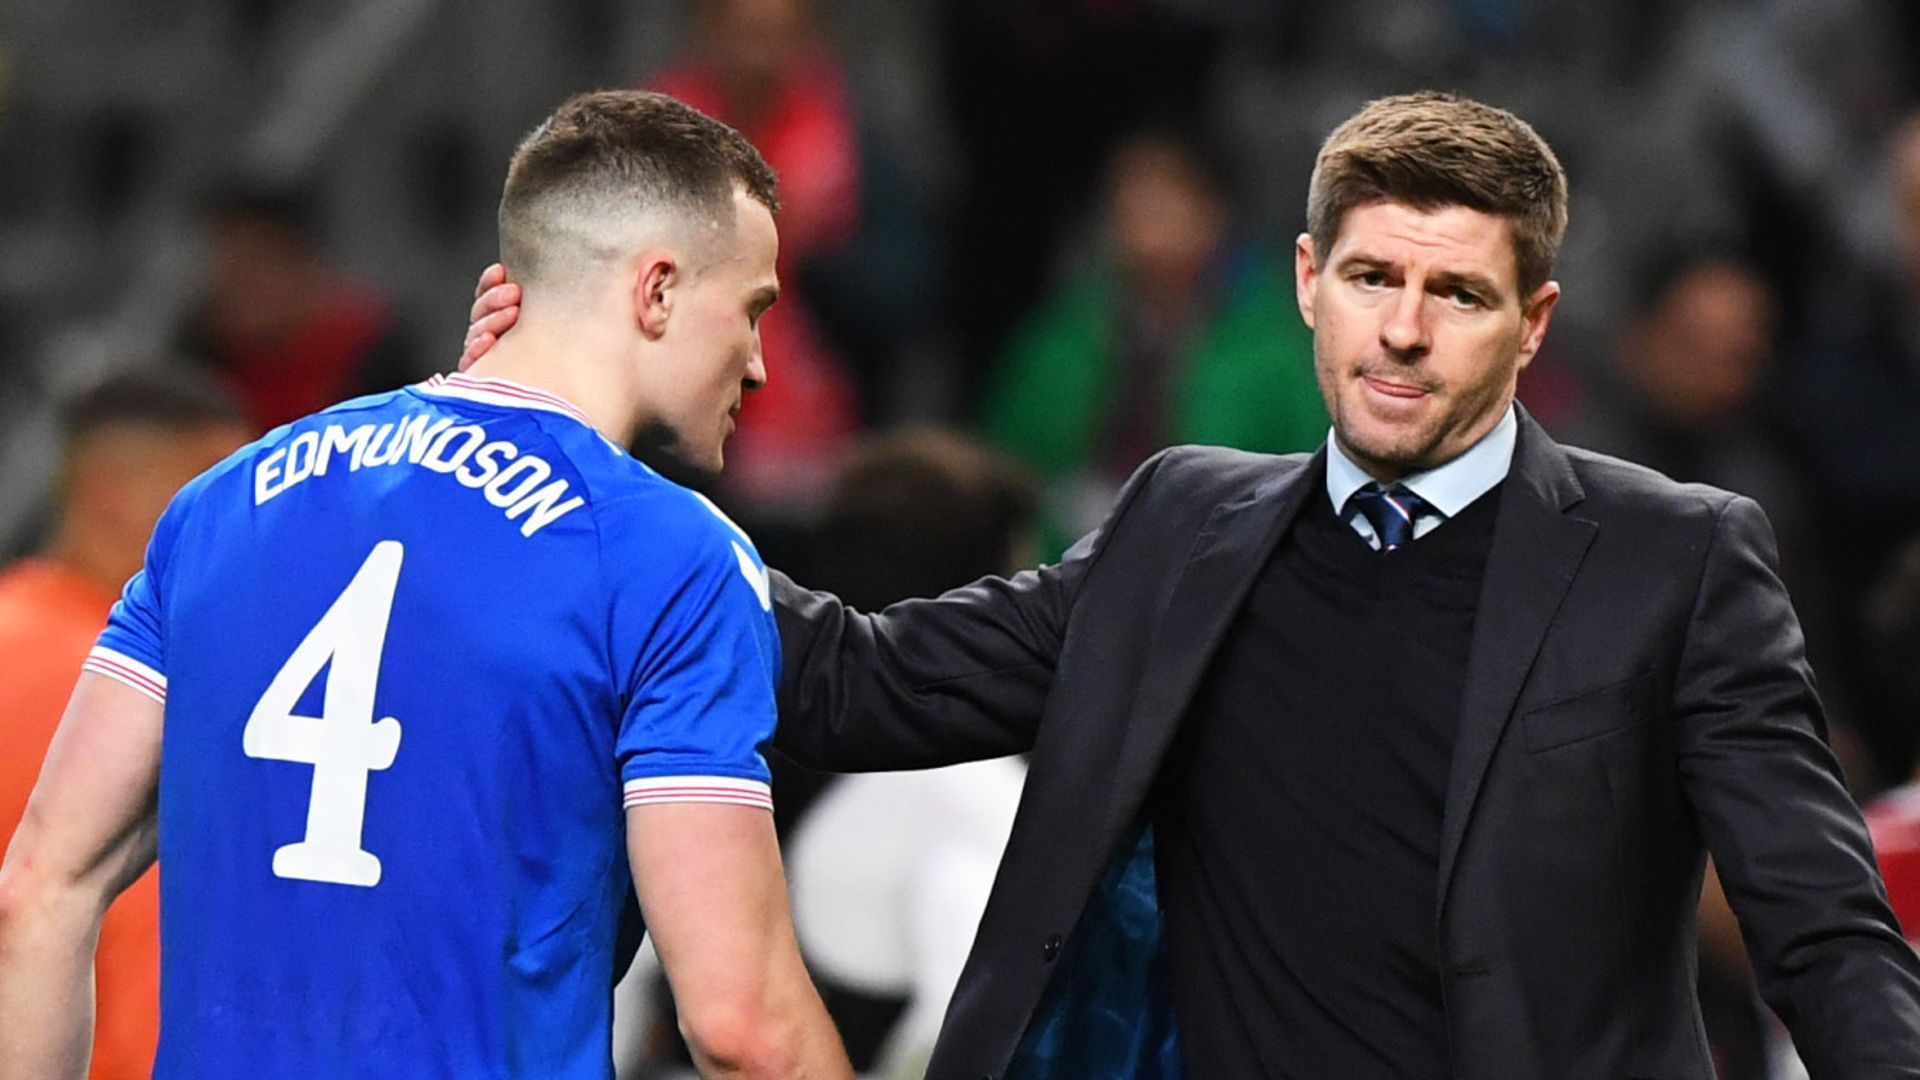 Rangers vs Aberdeen on Sky: Preview and prediction